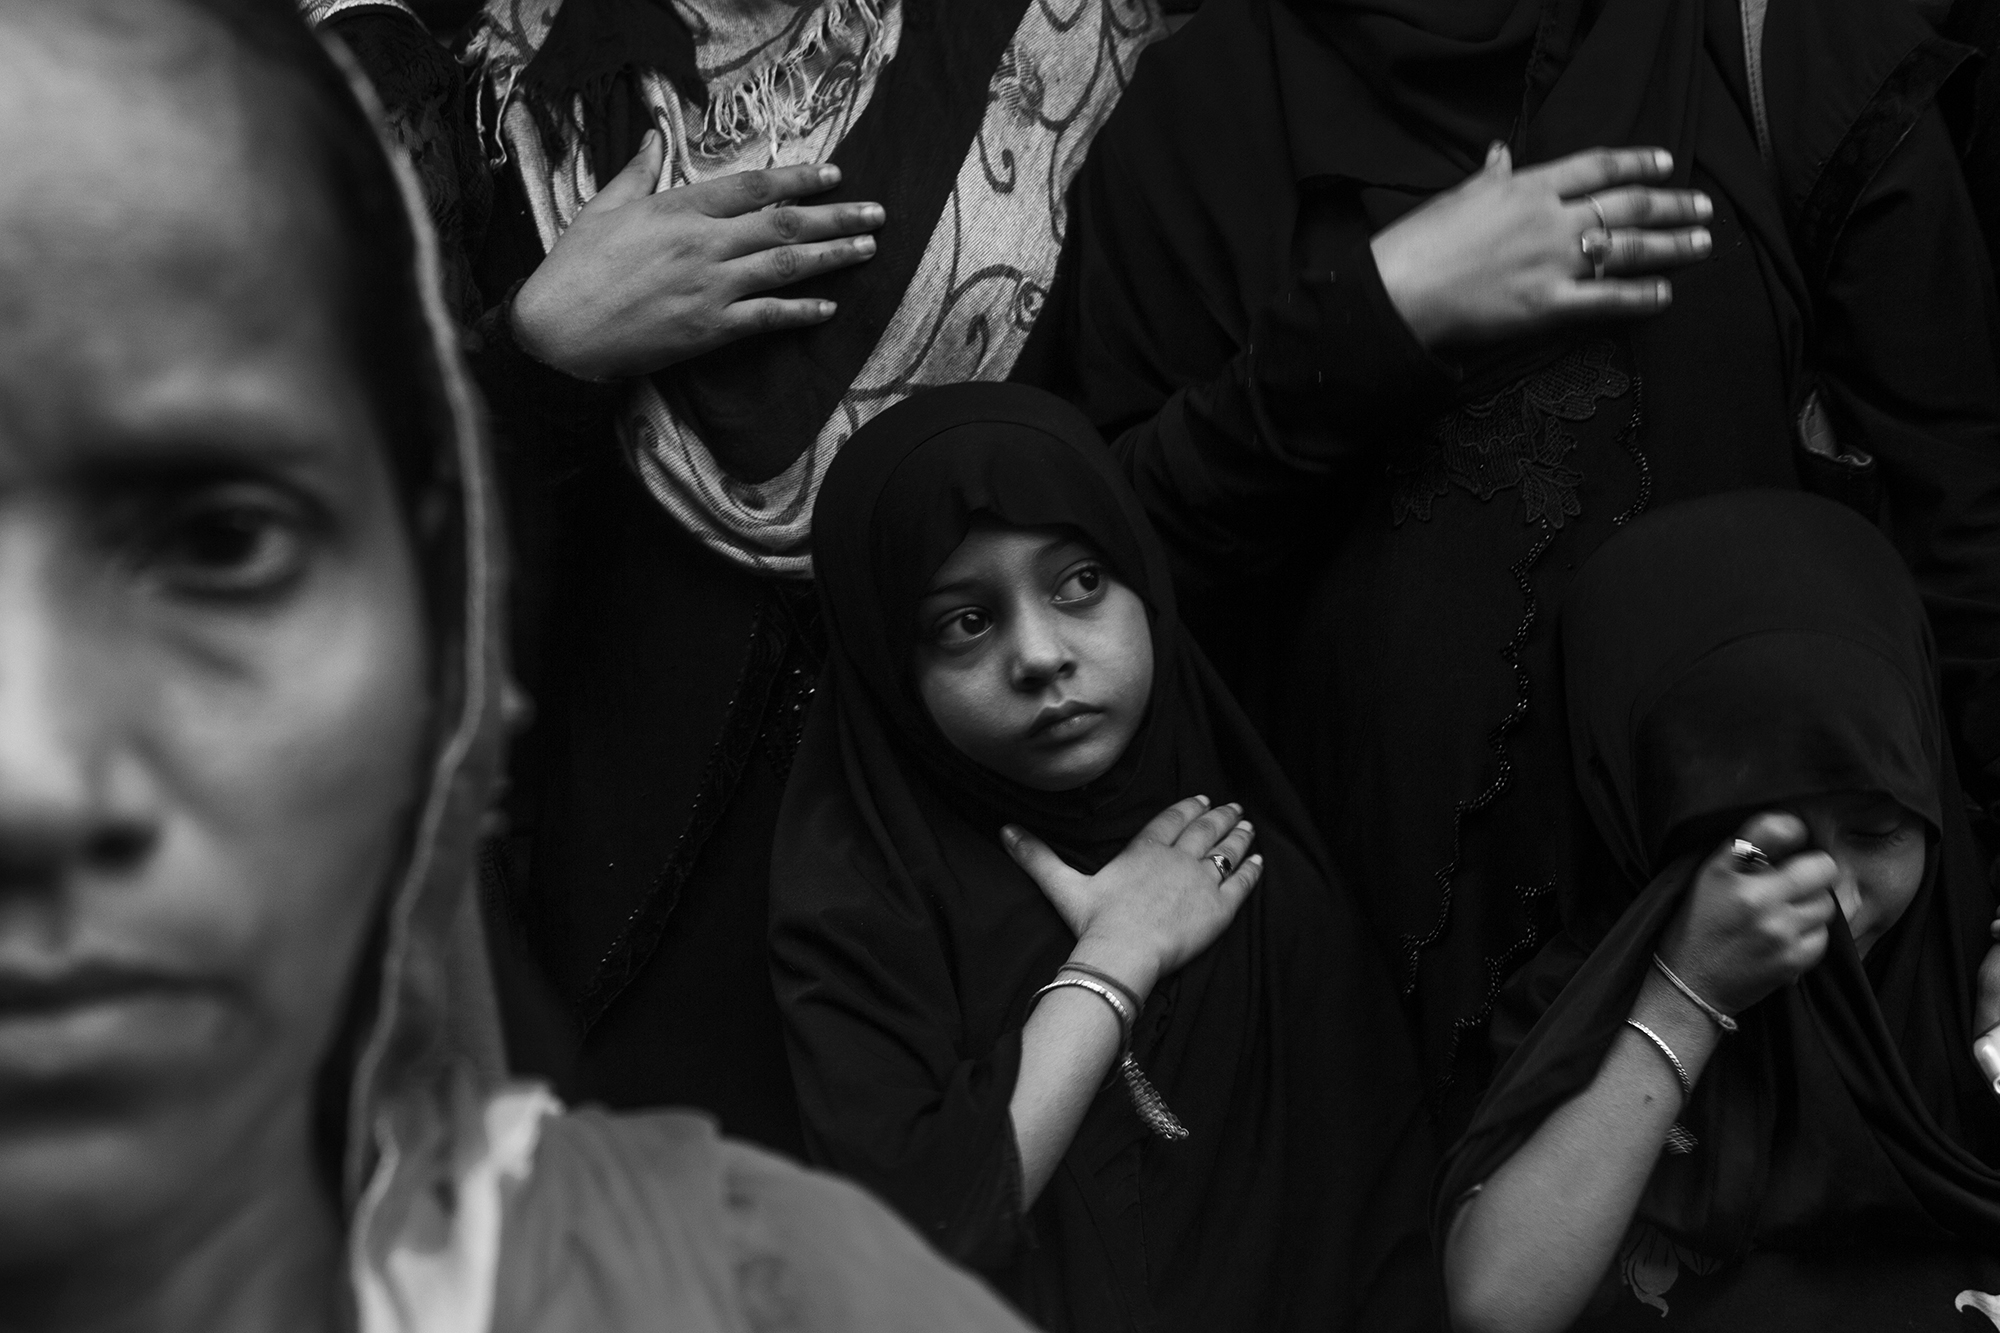 In Muharram, The Muslim women and children were watching the procession from a remote place and beating their chest with hand to celebrate this event.